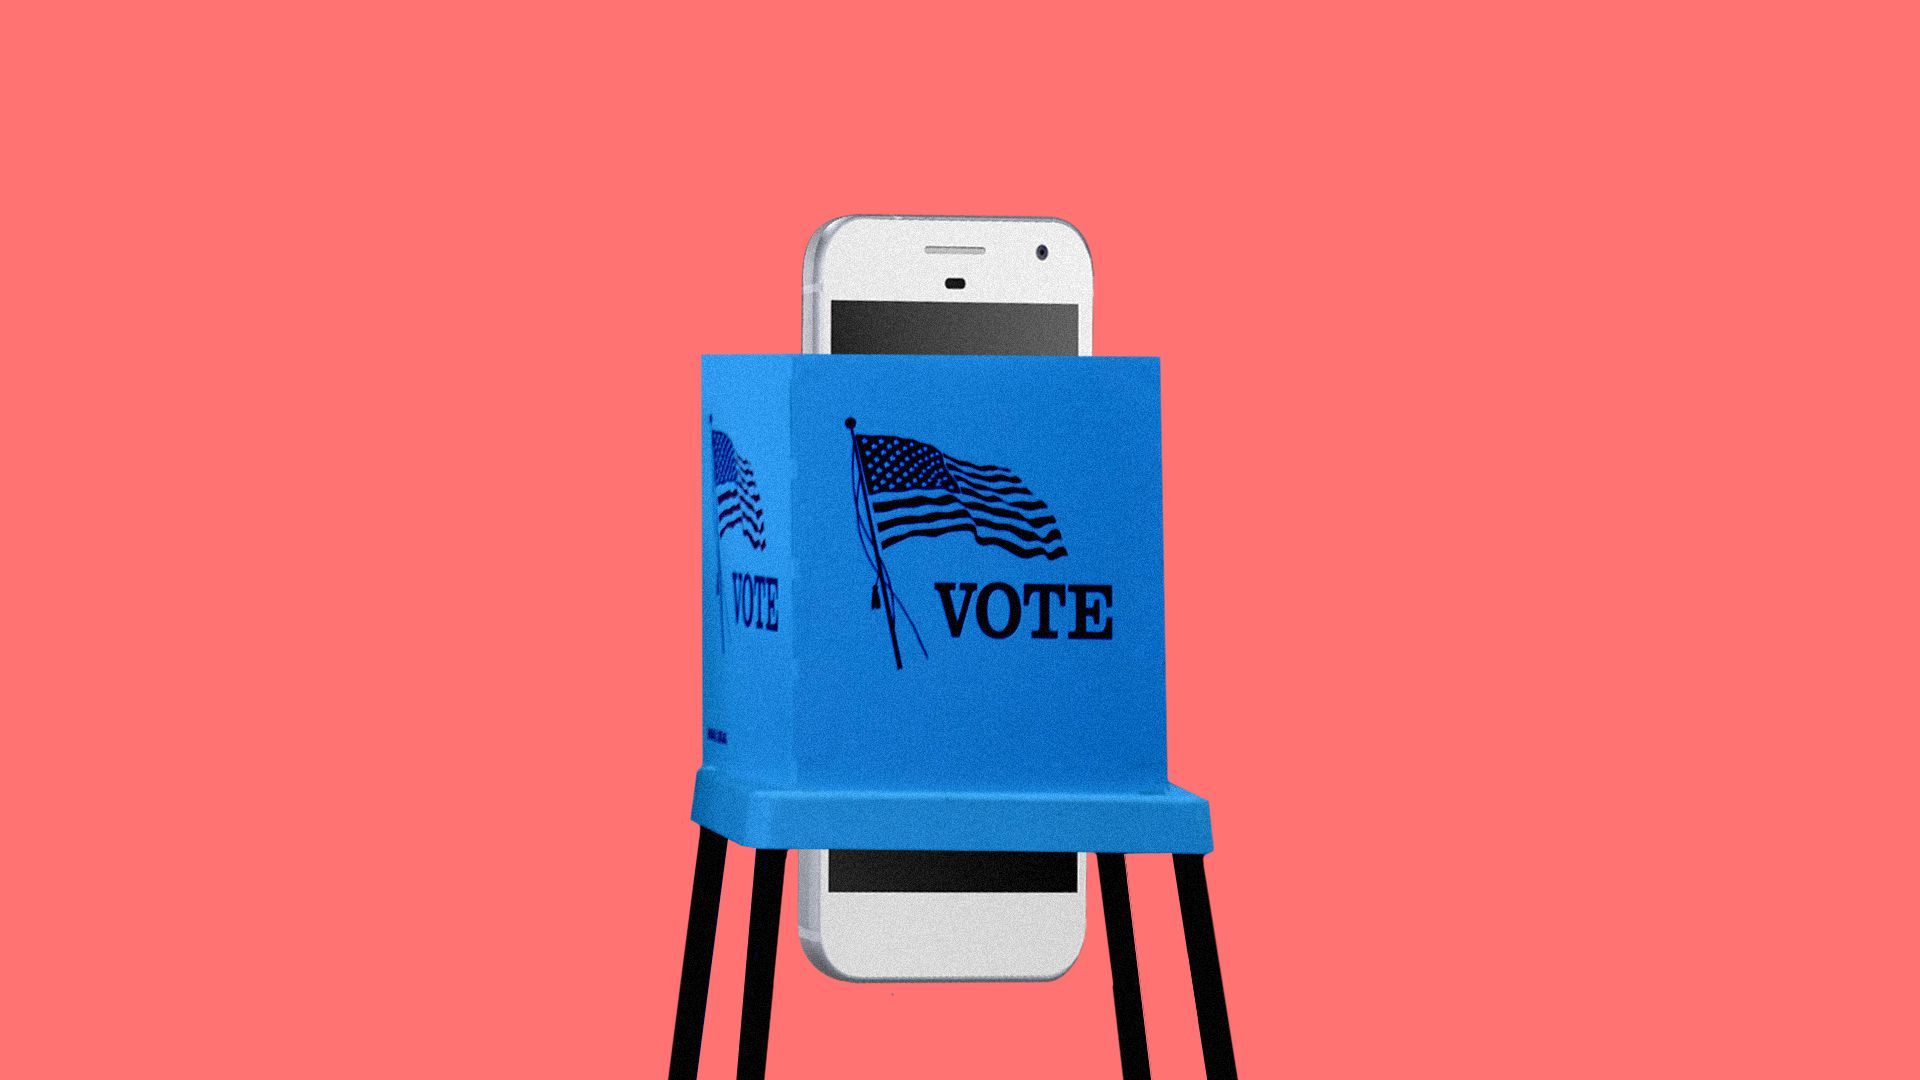 Illustration of phone in a voting booth